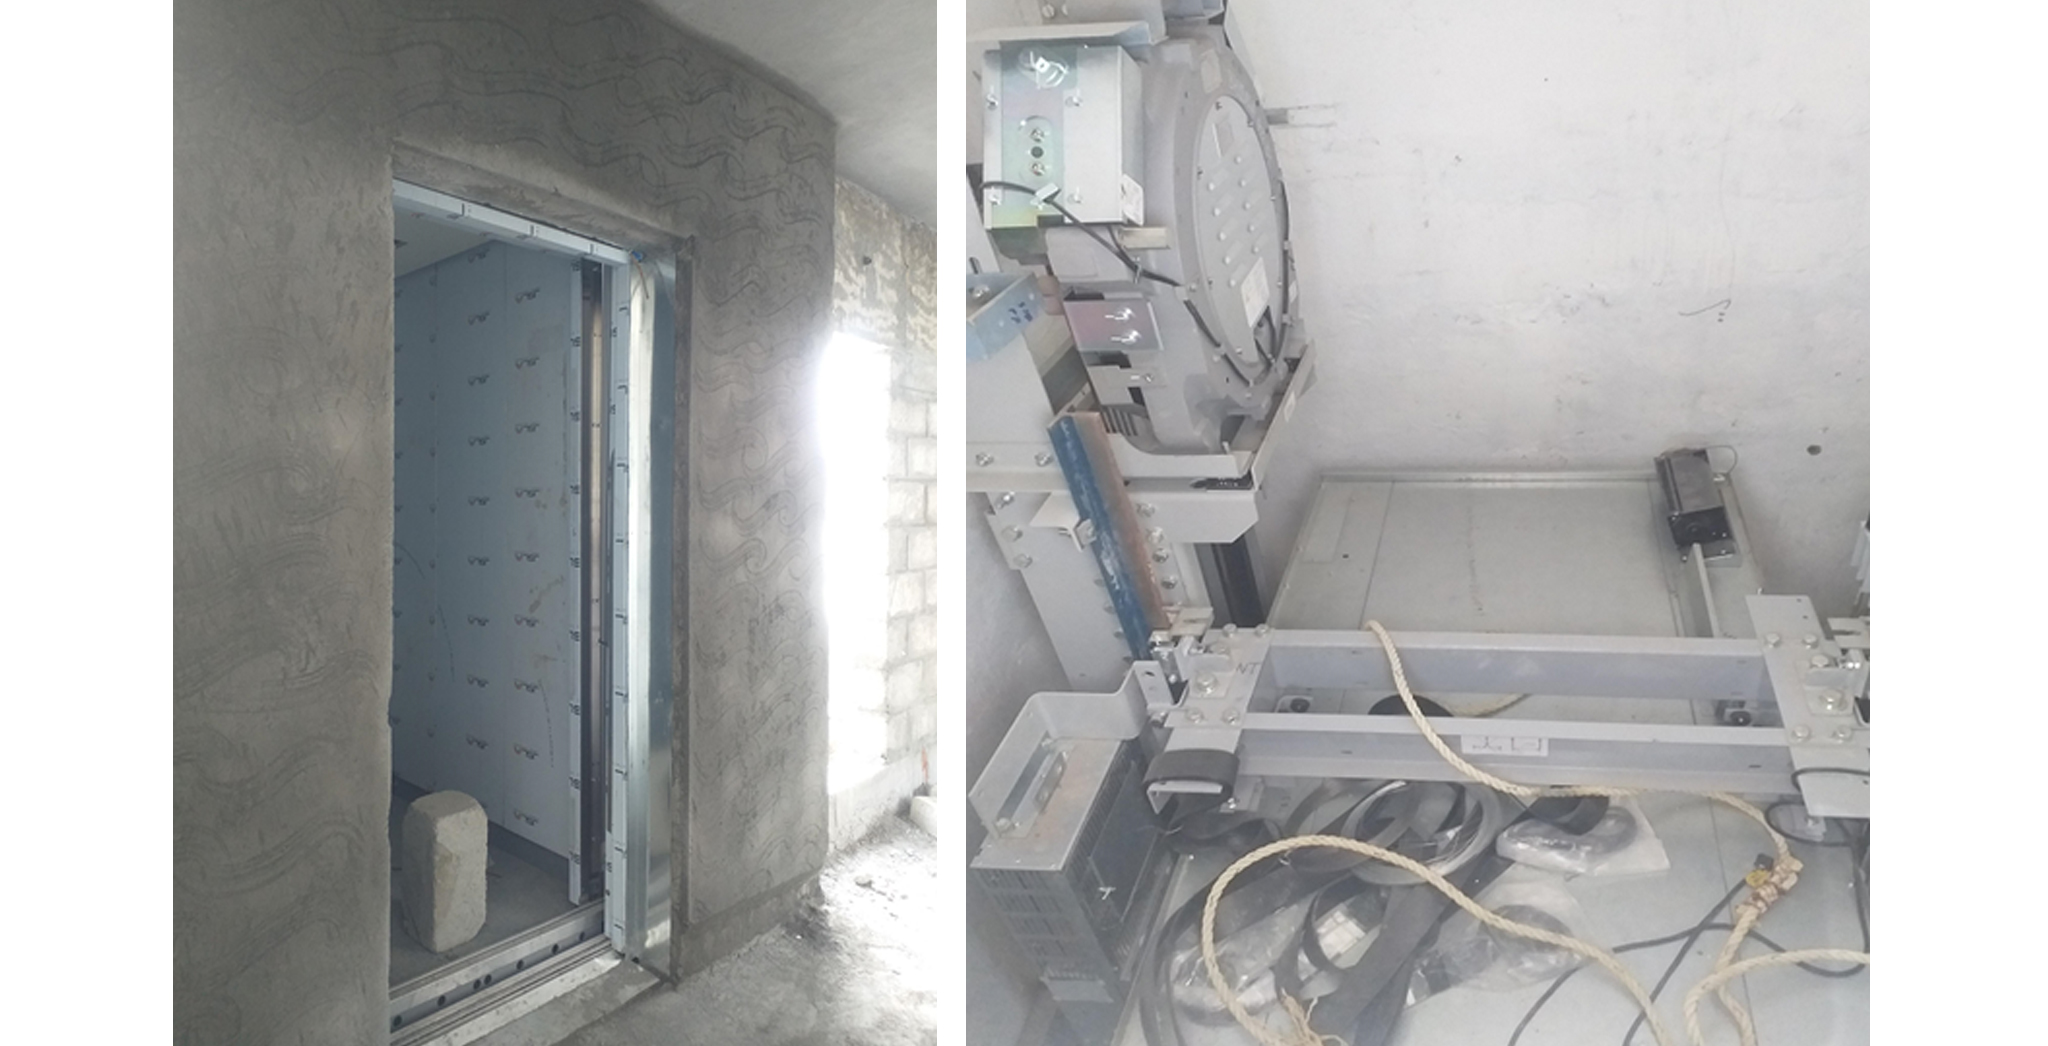 Aug 2021 - Lift Erecting Works in progress: At Block Q, R, F, G, H and A